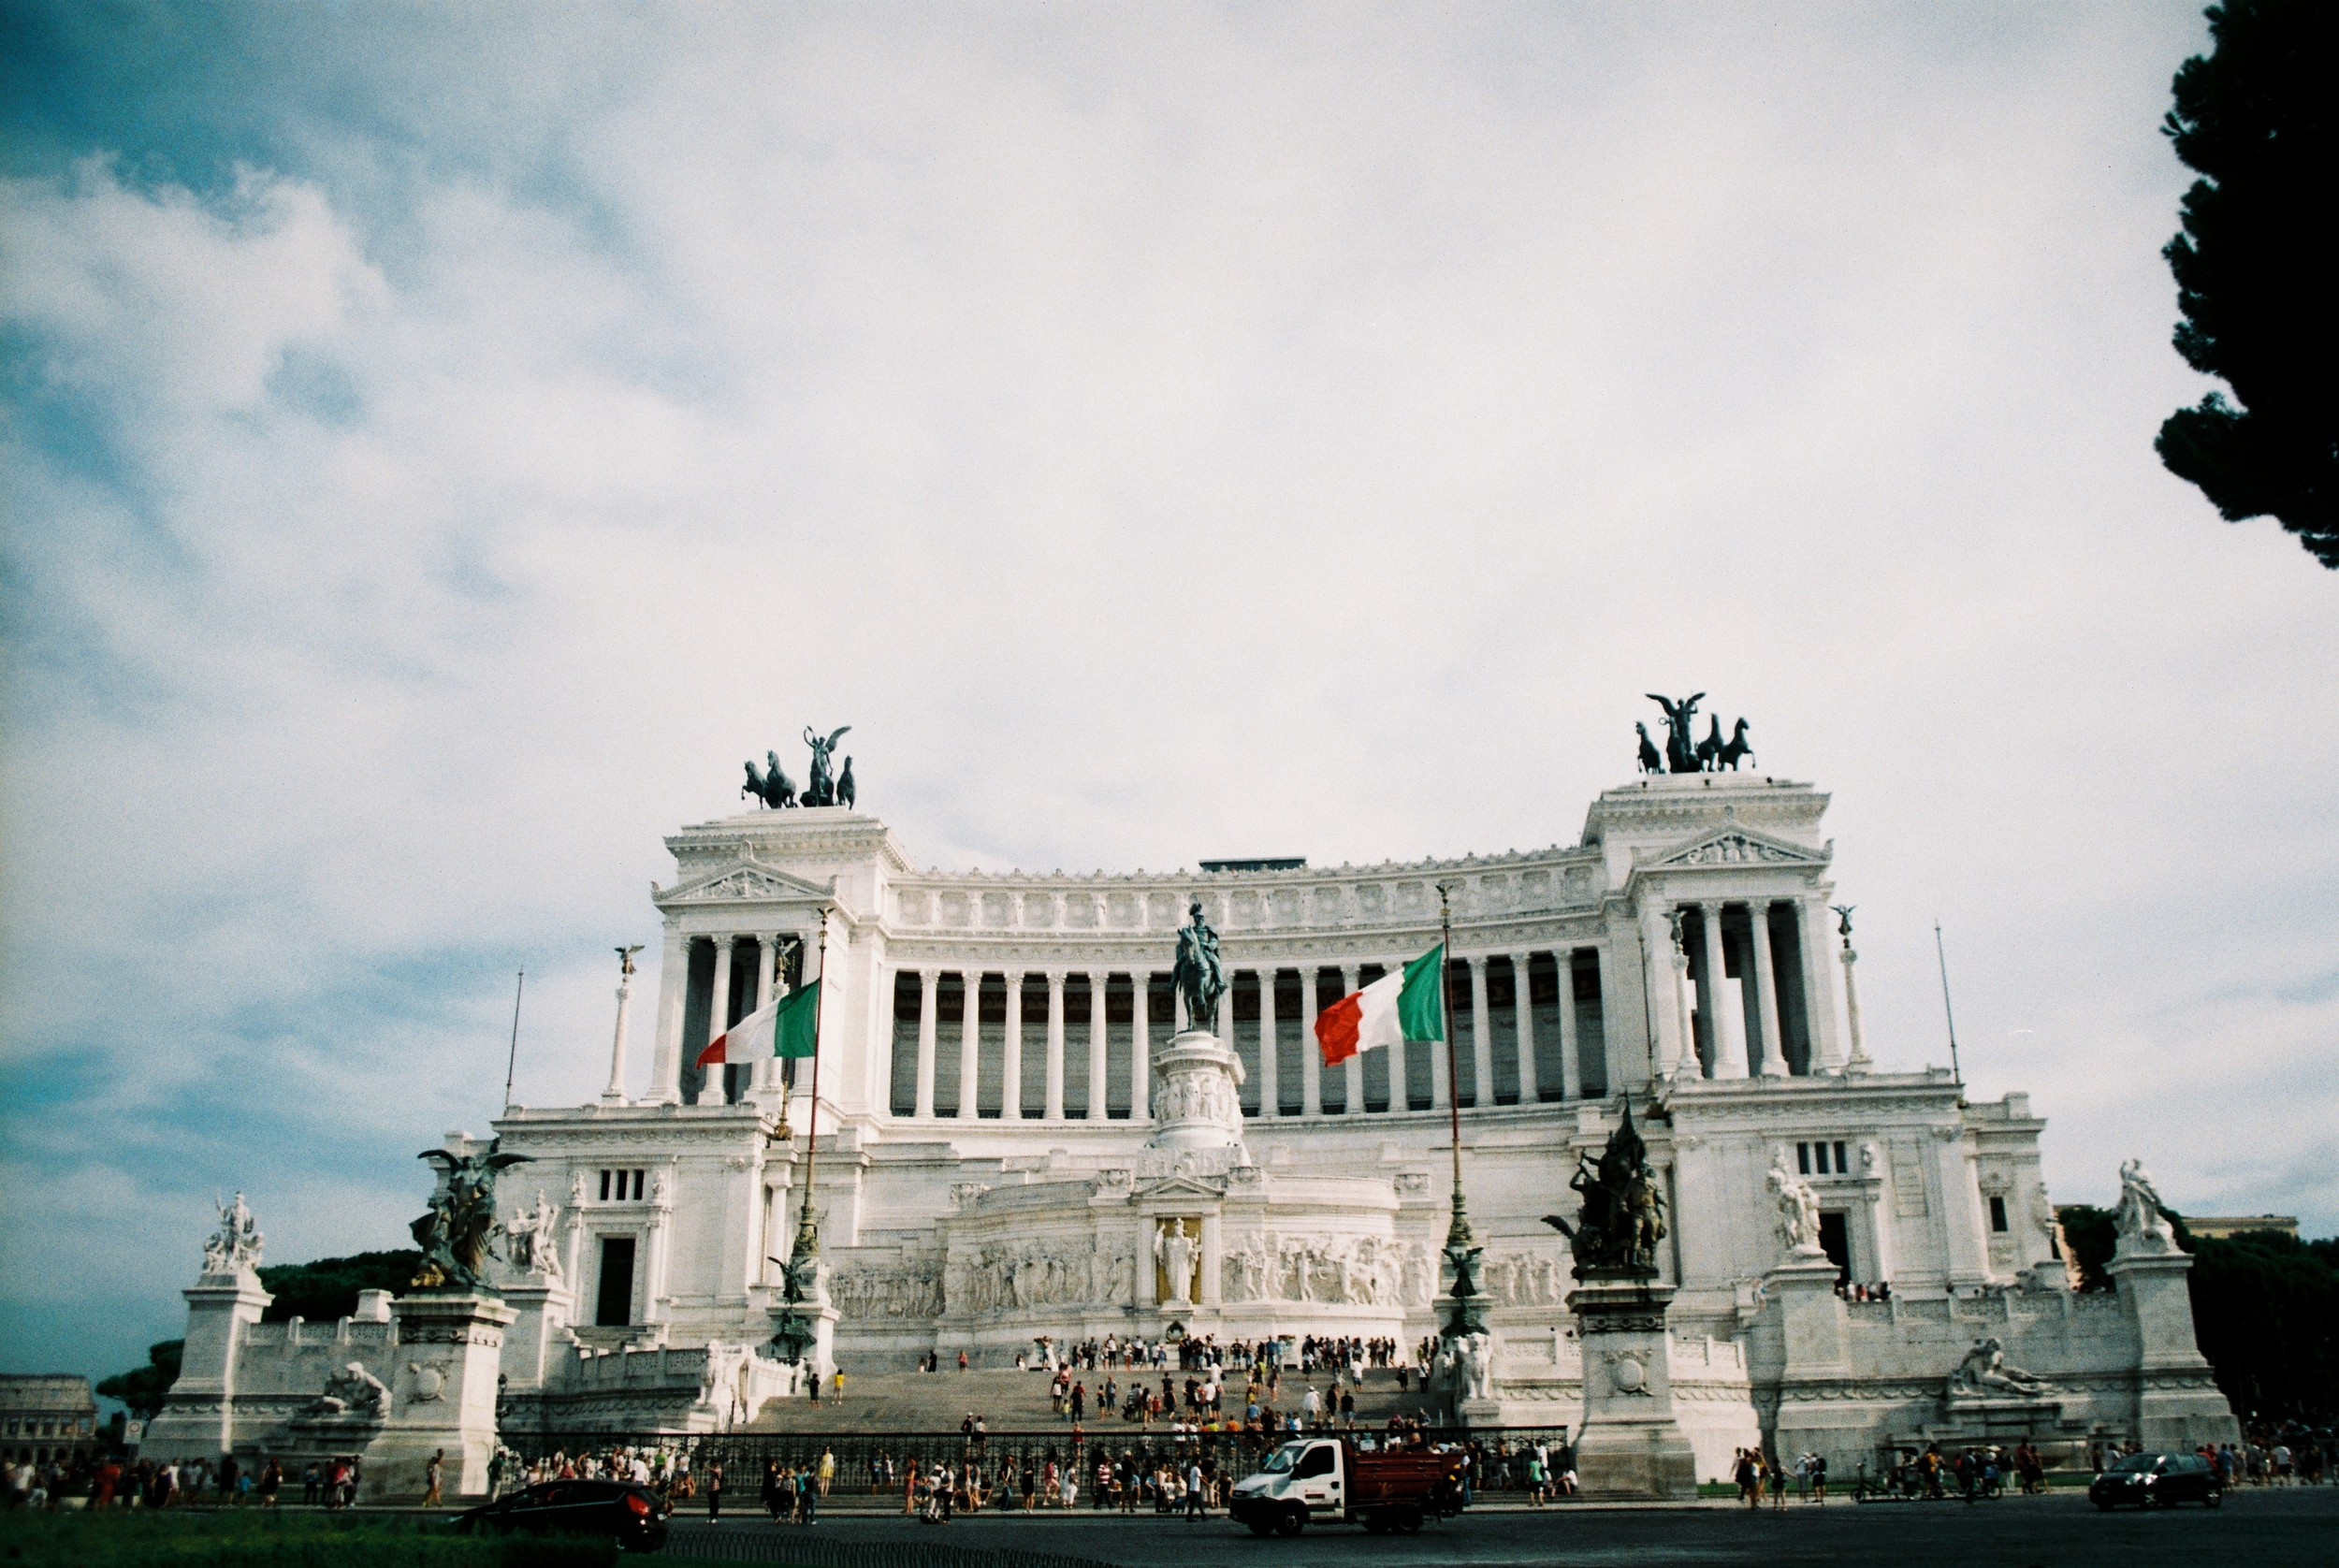 """The Altare della Patria ([alˈtaːre ˈdella ˈpaːtrja]; English: """"Altar of the Fatherland""""), also known as the Monumento Nazionale a Vittorio Emanuele II (""""National Monument to Victor Emmanuel II"""") or Il Vittoriano, is a monument built in honour of Victor Emmanuel, the first king of a unified Italy, located in Rome, Italy. It occupies a site between the Piazza Venezia and the Capitoline Hill. (wikipedia)"""